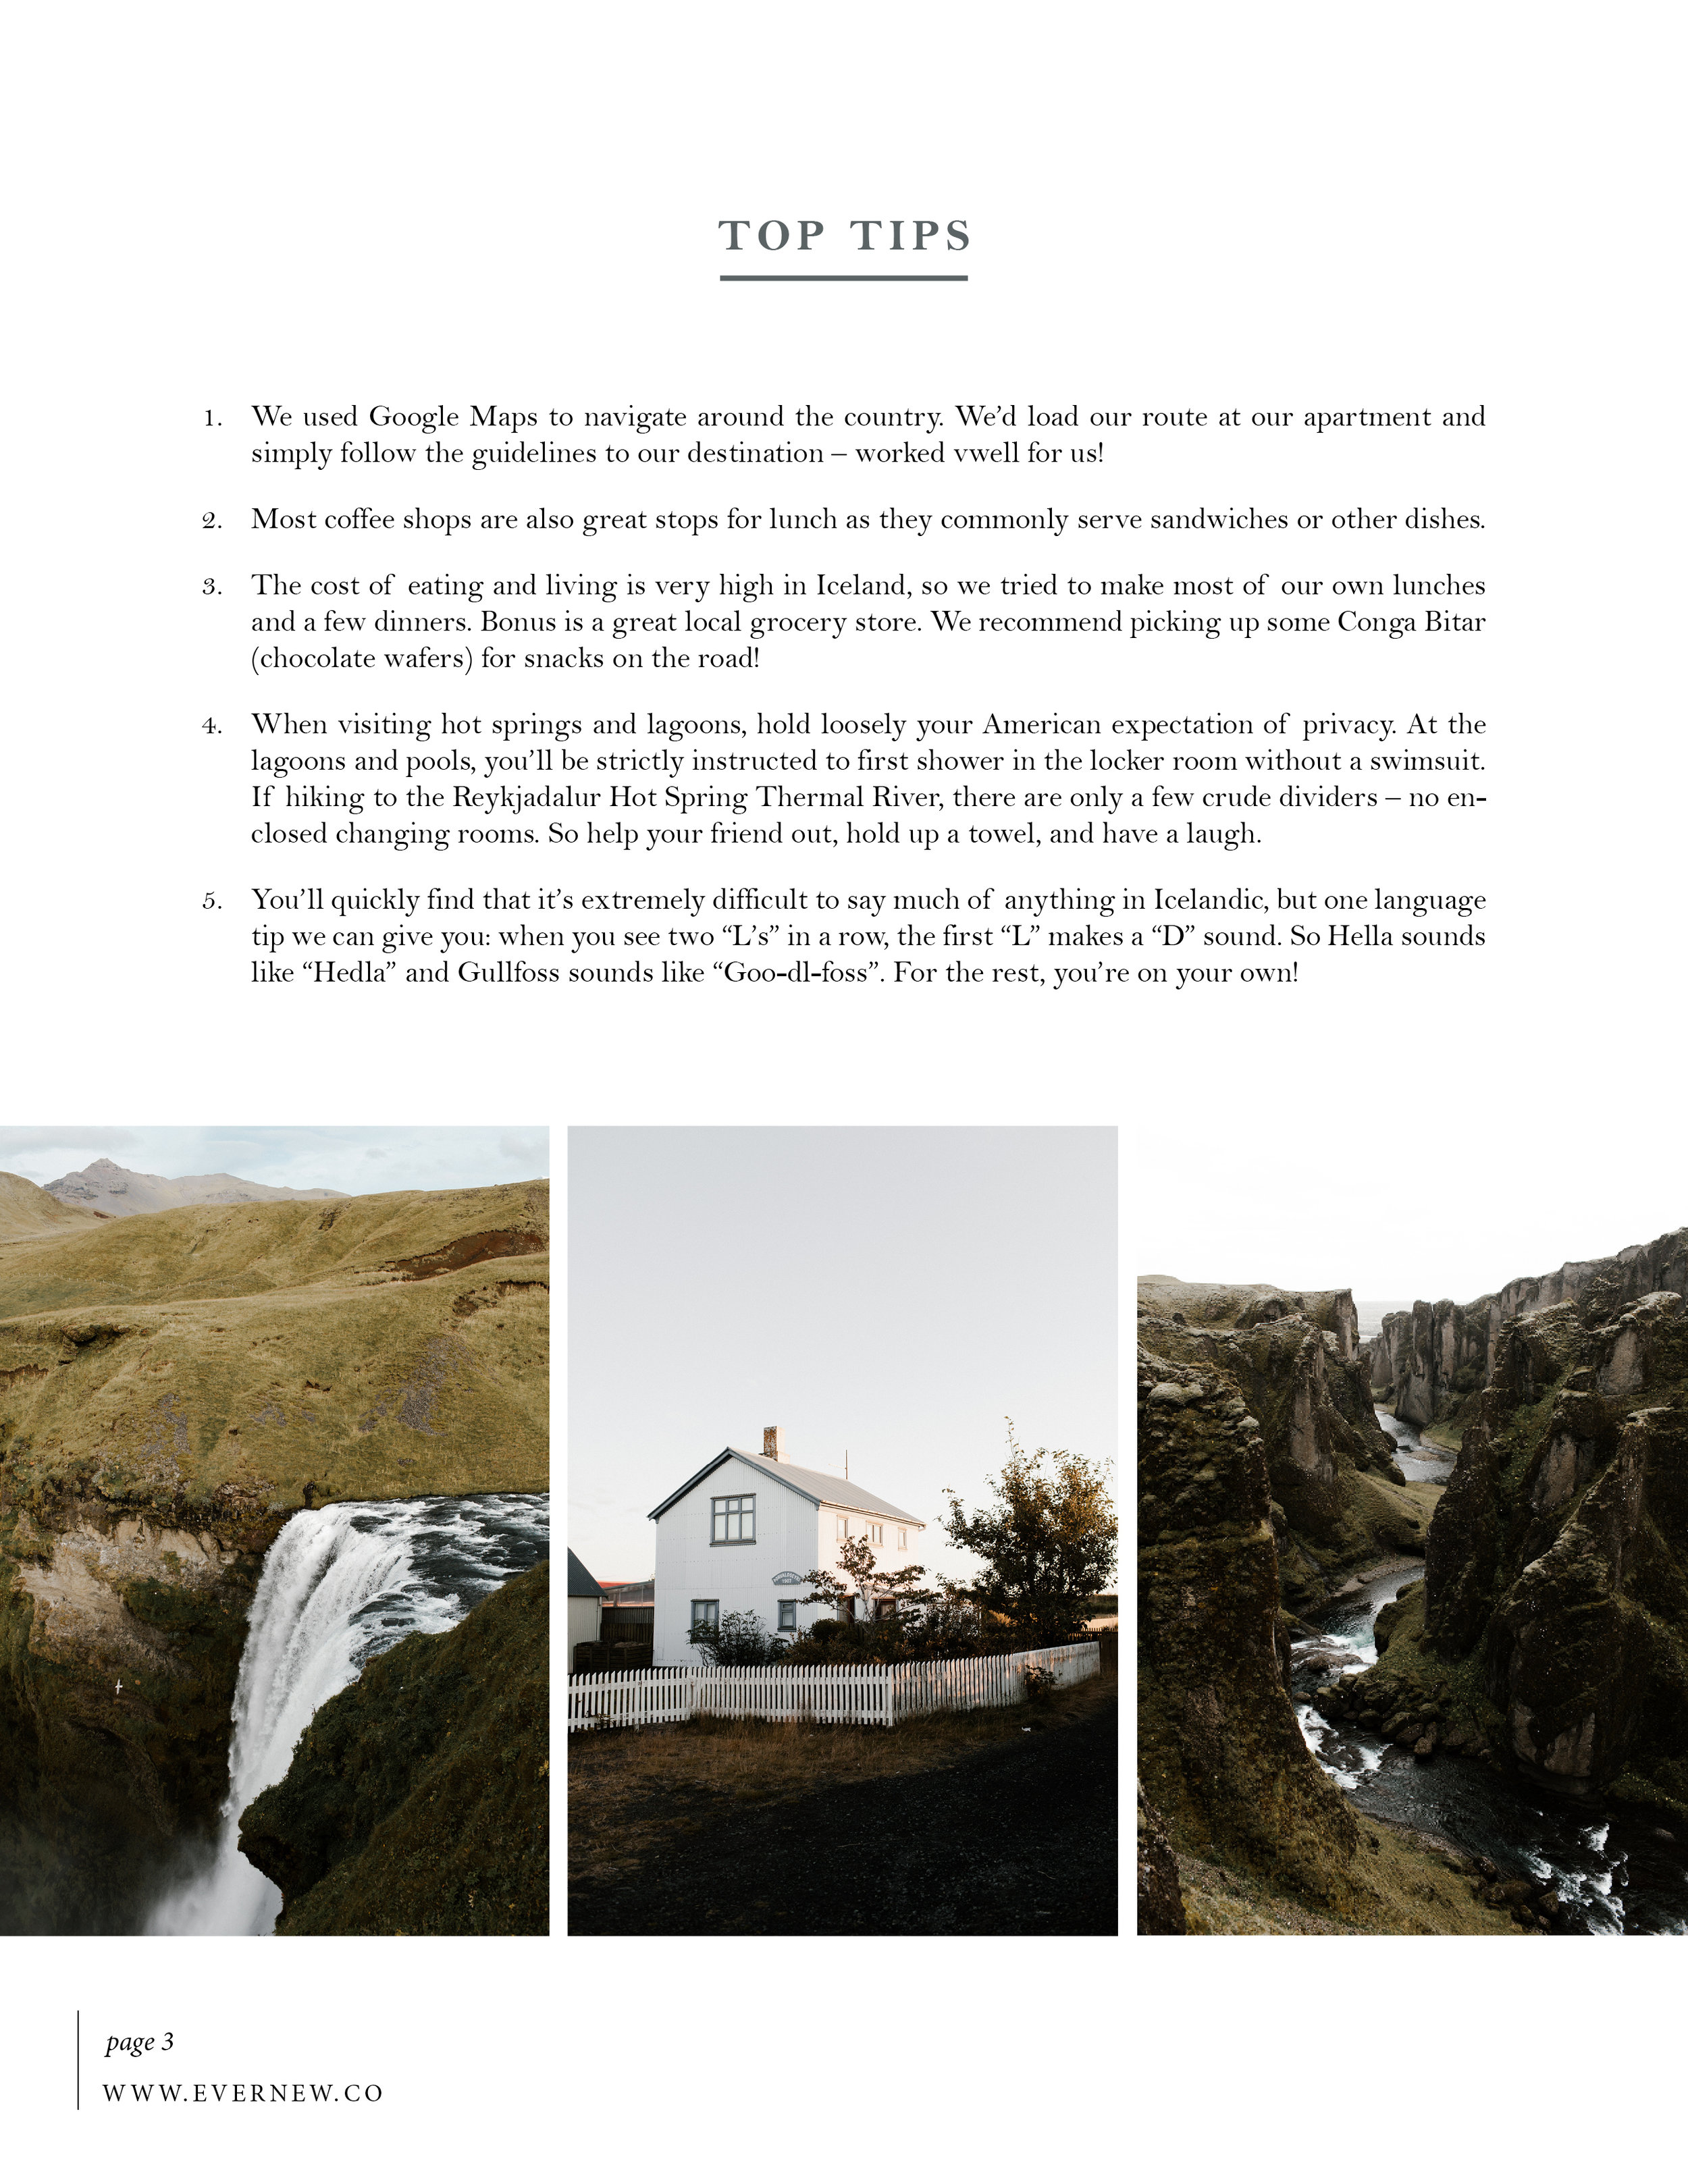 Evernew - Iceland Guide3.jpg